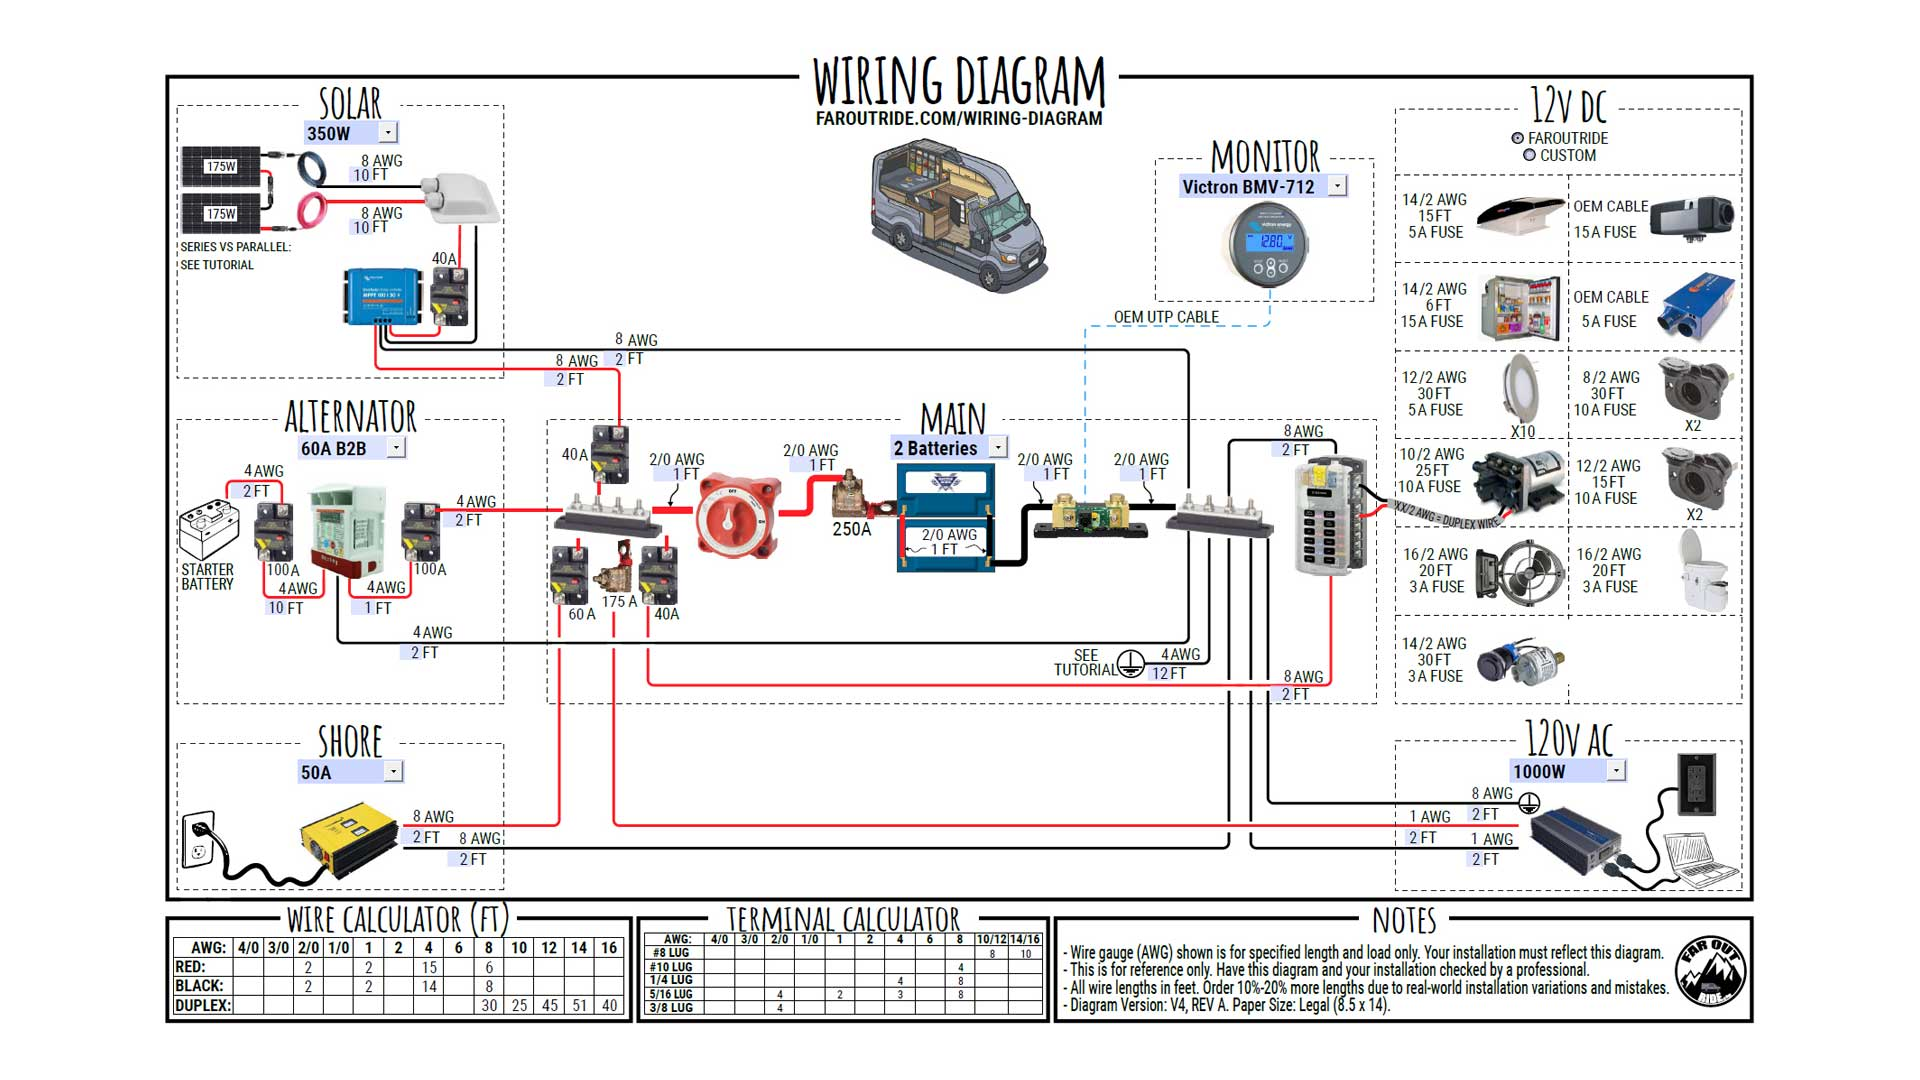 [SCHEMATICS_48IS]  Wiring Diagram & Tutorial for Camper Van: Transit, Sprinter, ProMaster,  etc. (PDF) | FarOutRide | Campervan Wiring Diagram |  | FarOutRide.com